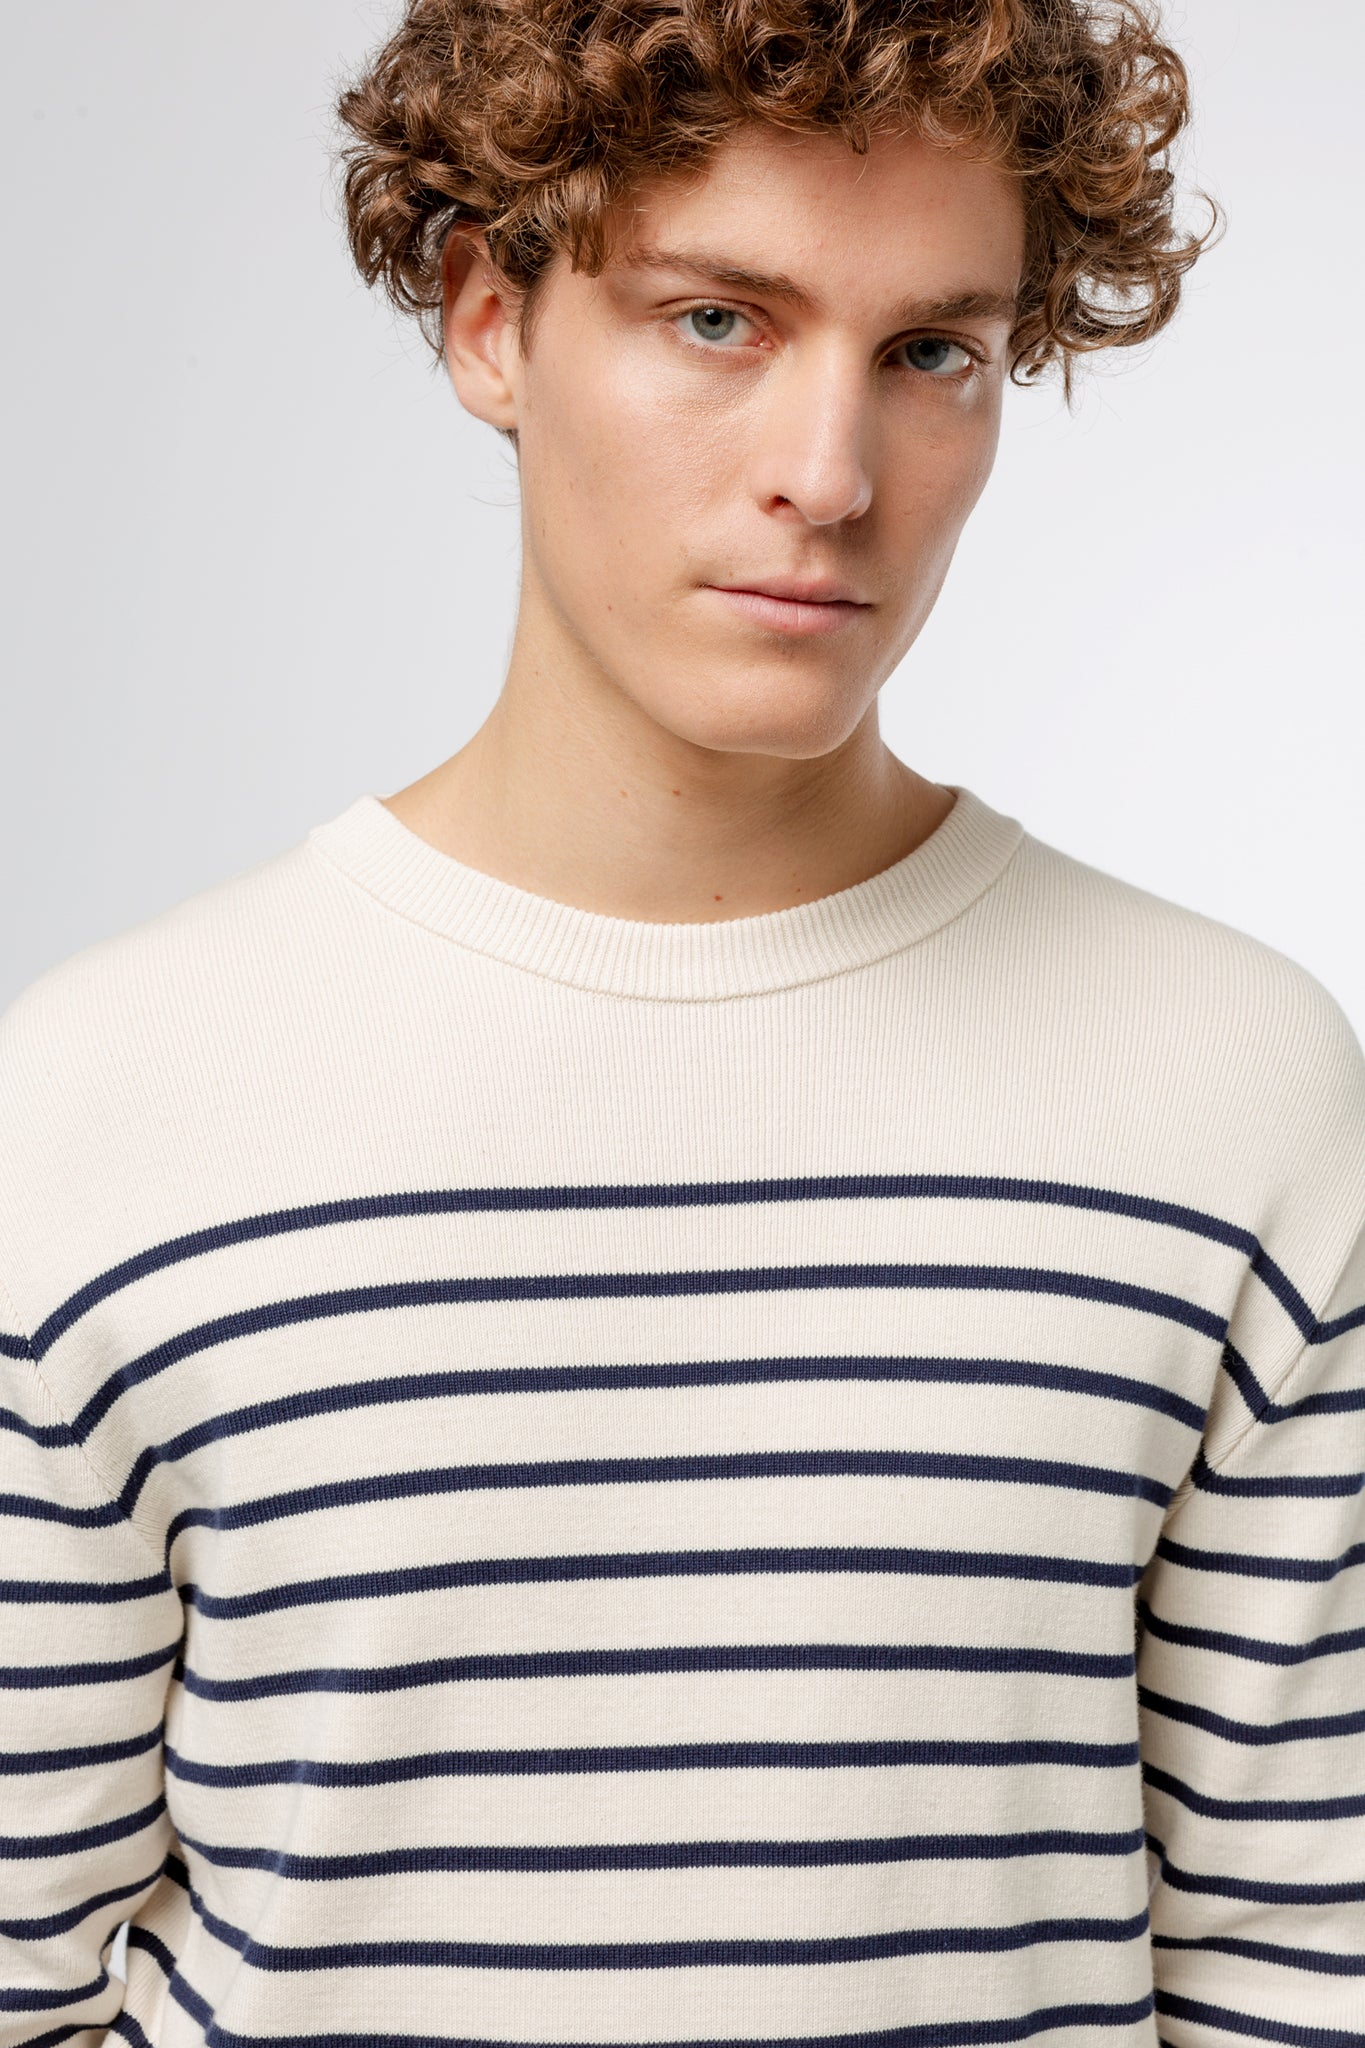 HORIZONTAL STRIPES OFF WHITE